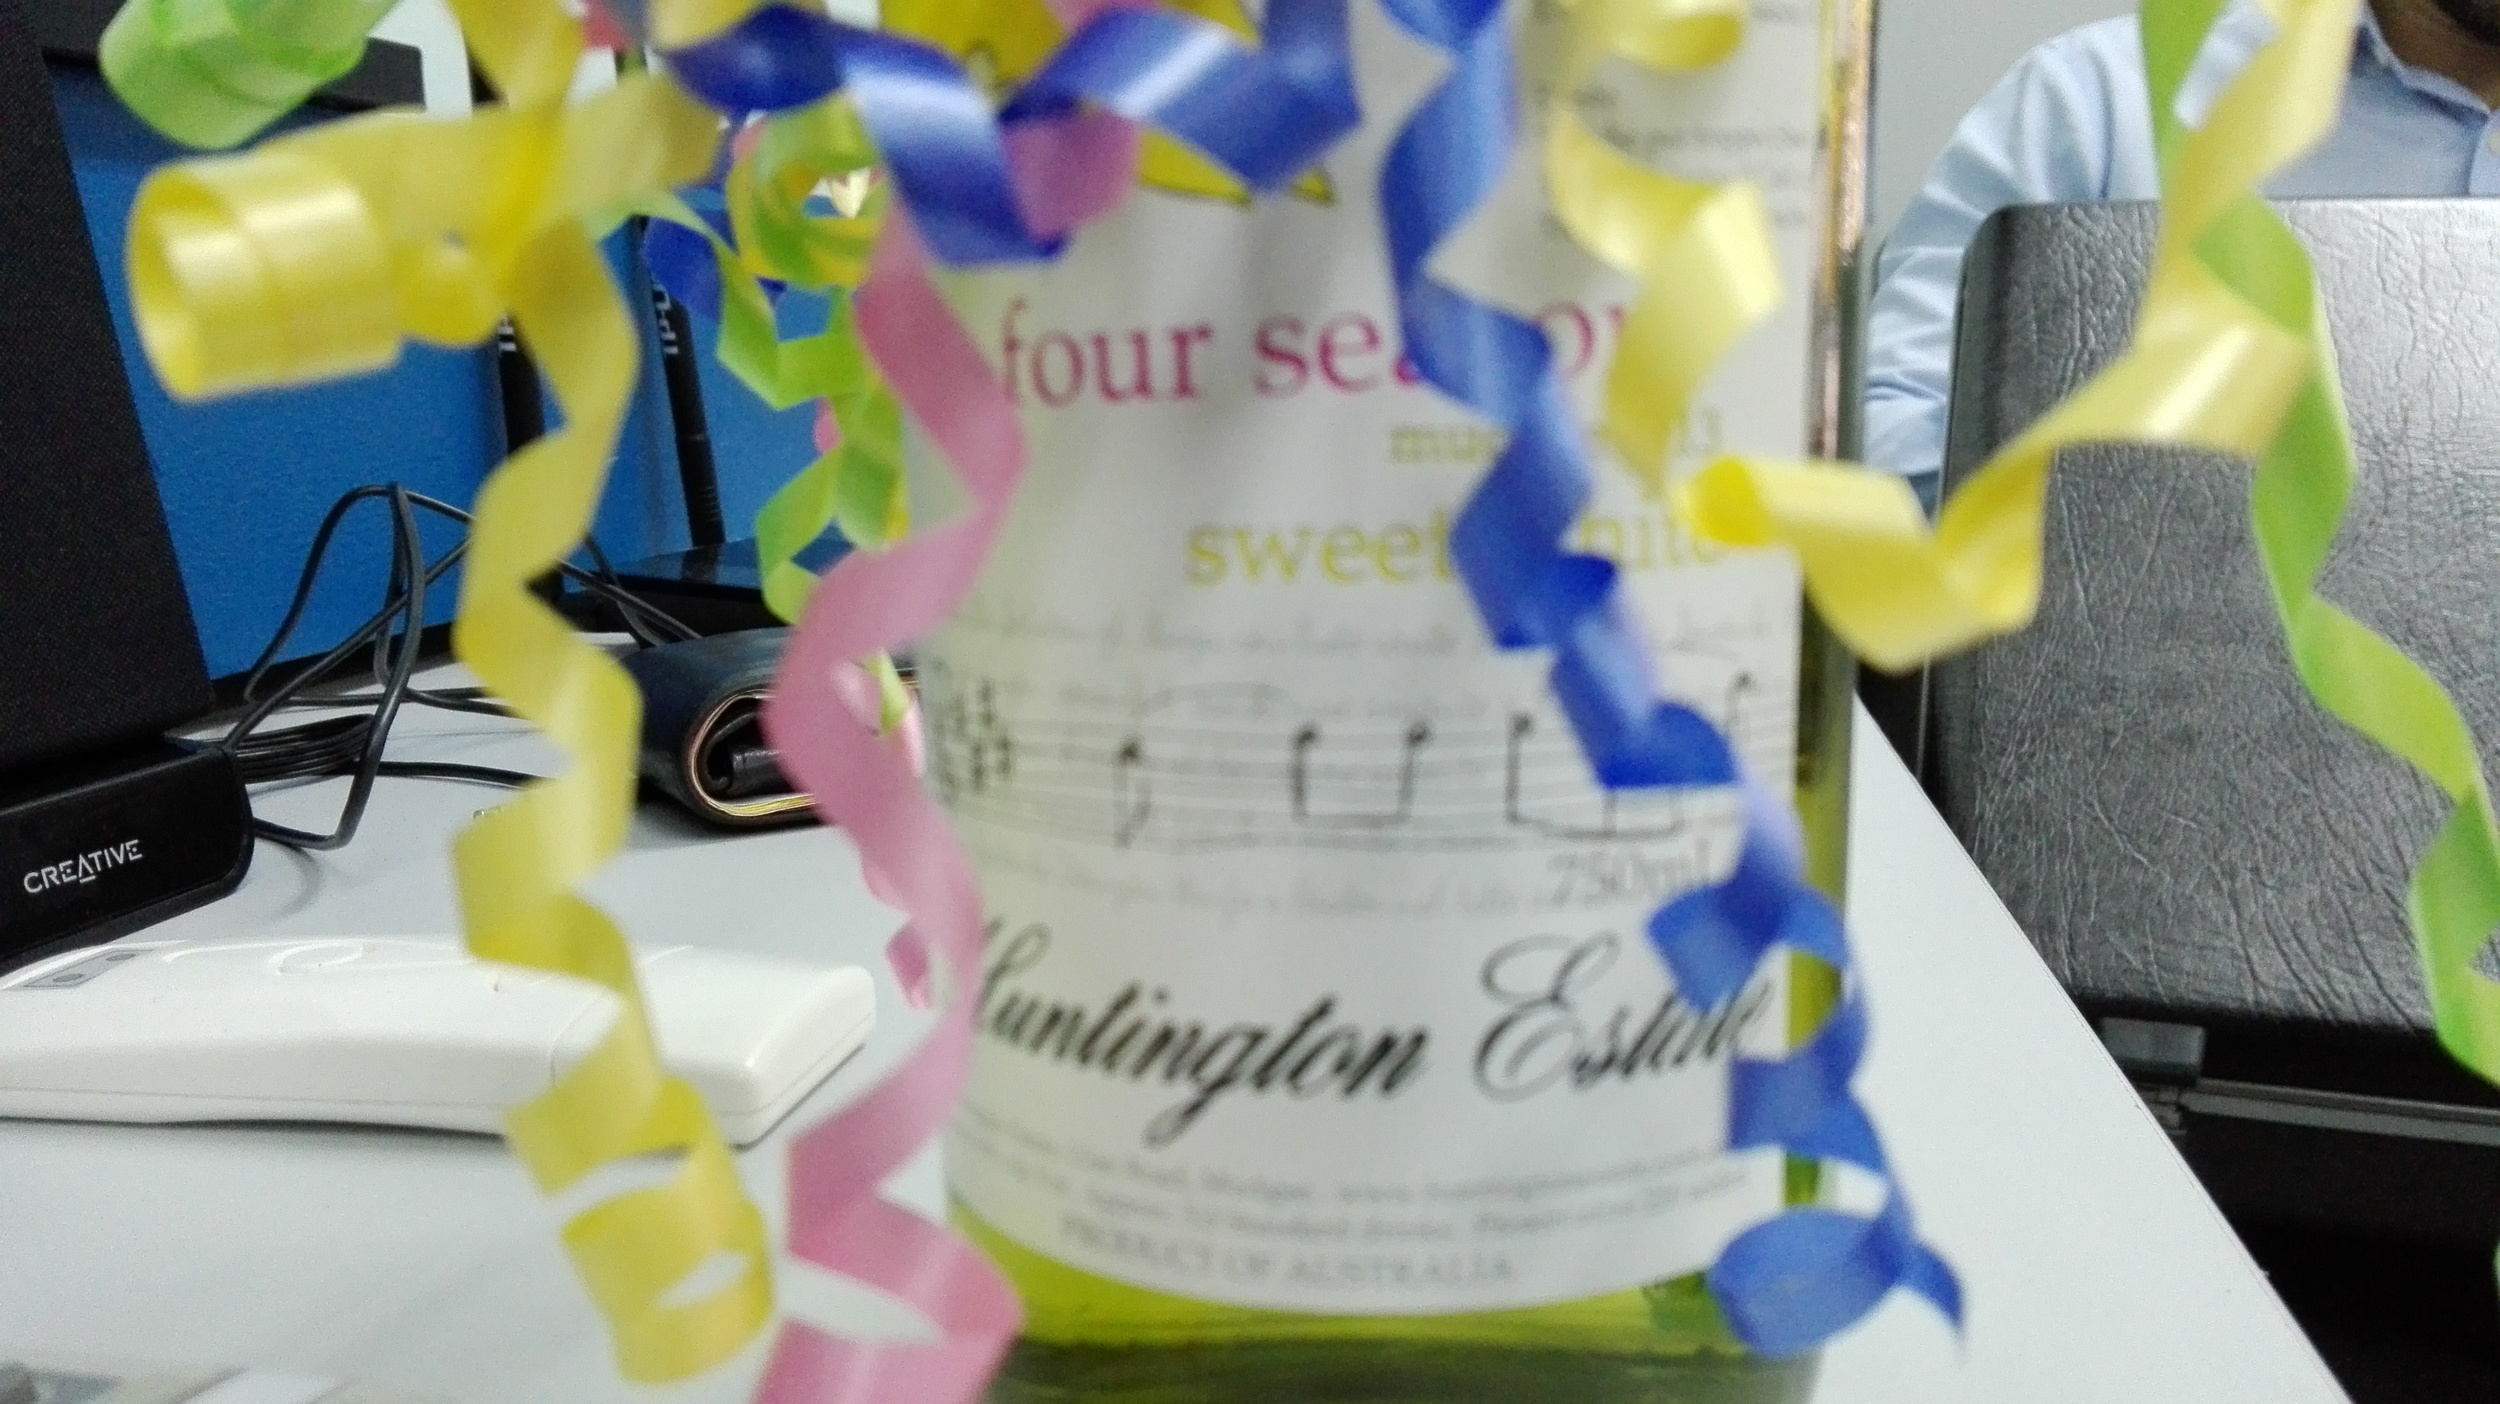 Jay Manahan correctly guessed the weight of this sweet white wine.jpg